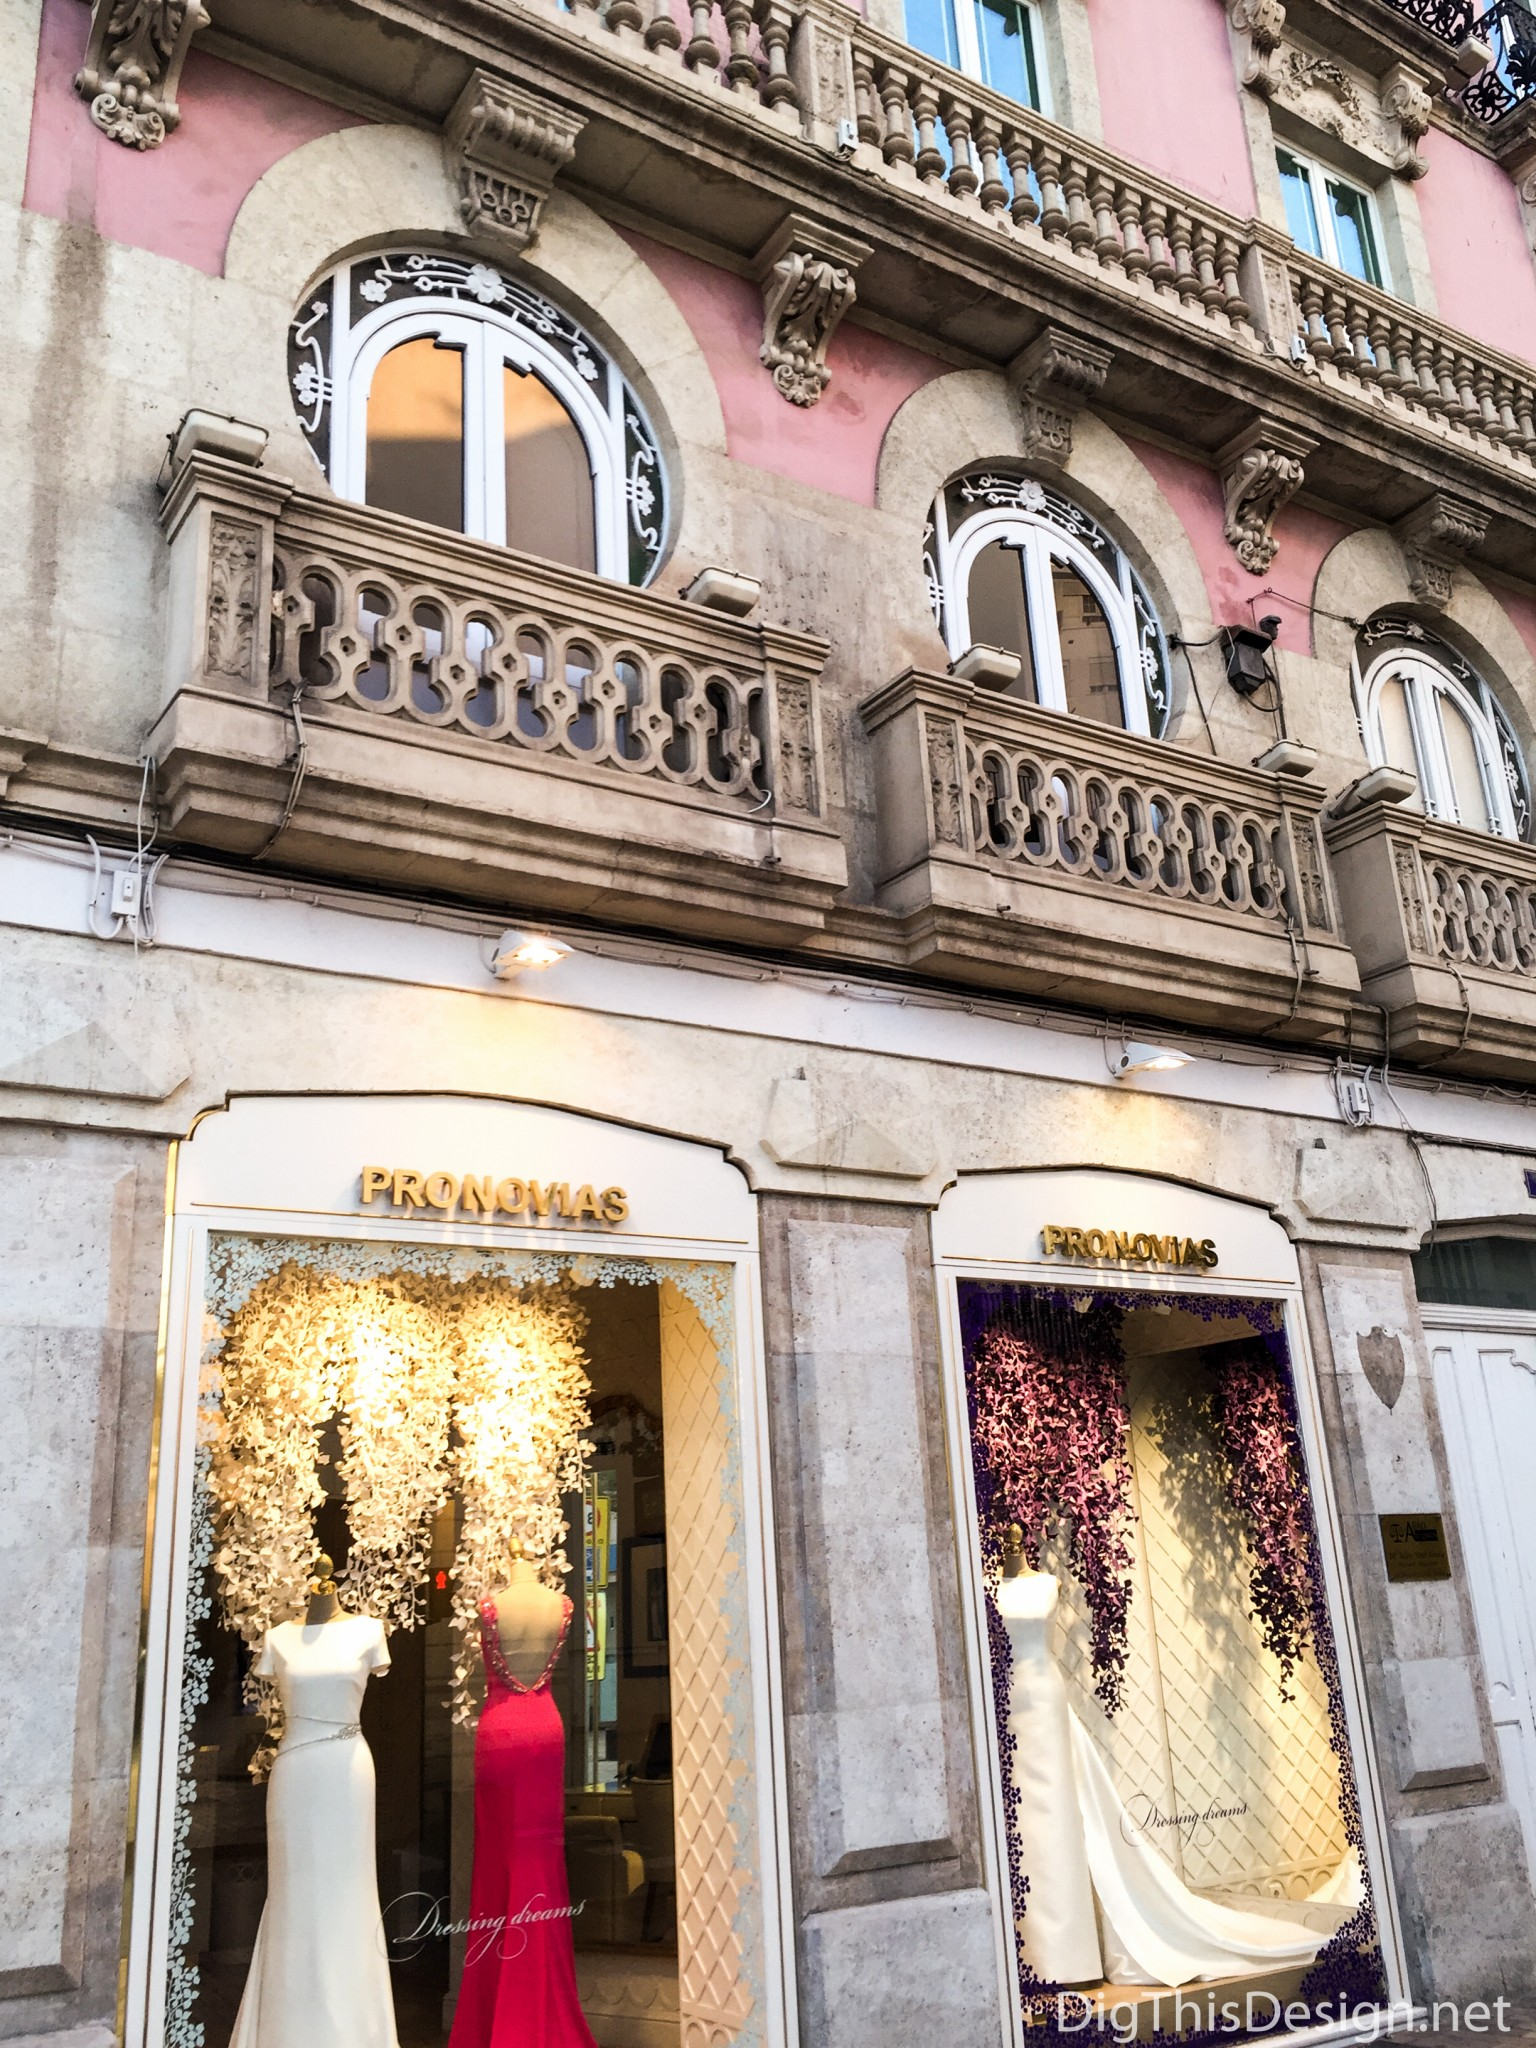 Almeria, Spain - In historic center a bridal store front.